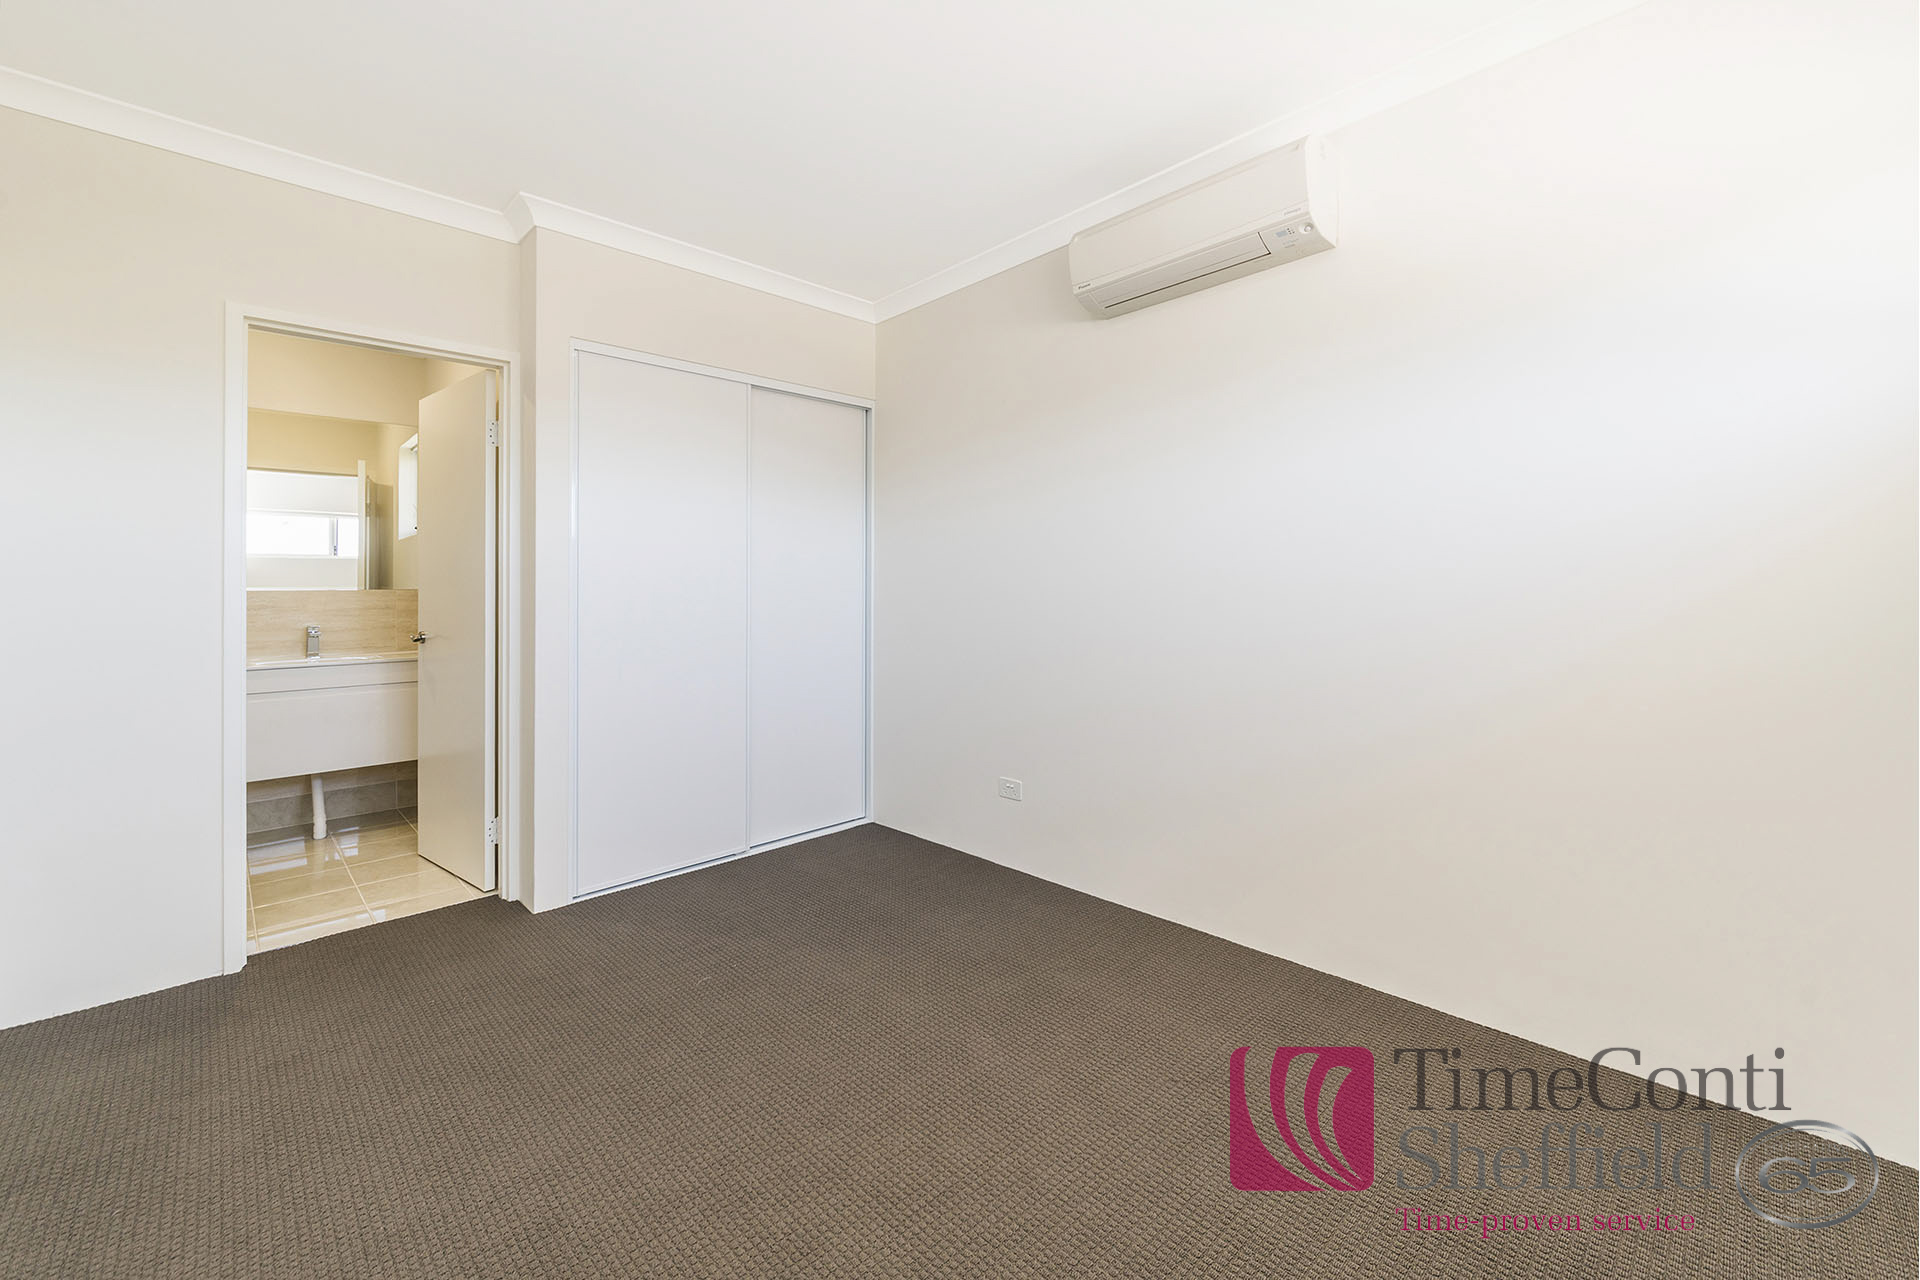 BRAND NEW STYLISH 3 BEDROOM 2 BATHROOM AIR CONDITIONED HOME | Time